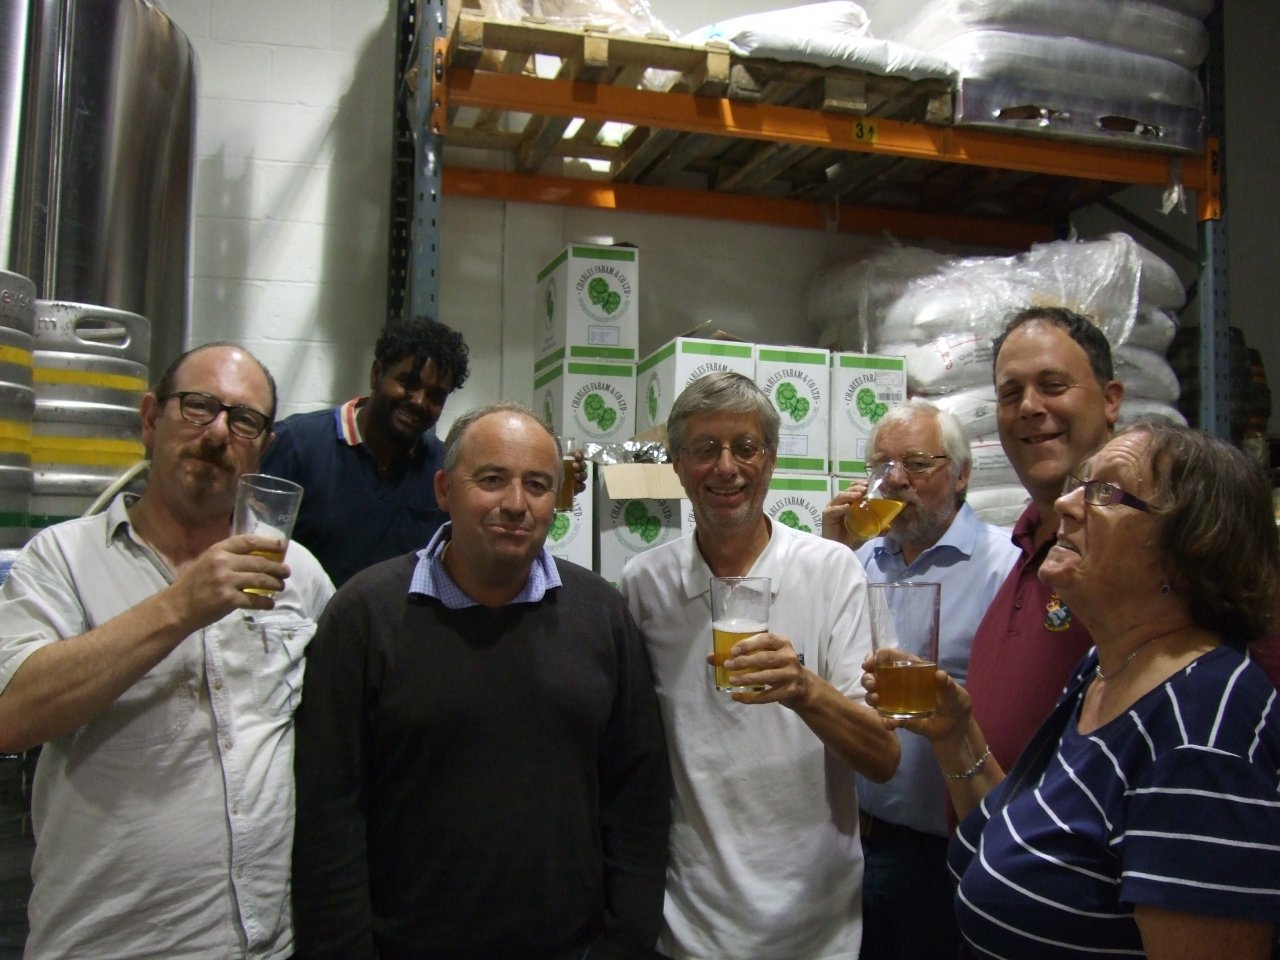 Members of The London Tasting Panel with Rob Jenkins (left centre) and brewer Farouk at the back